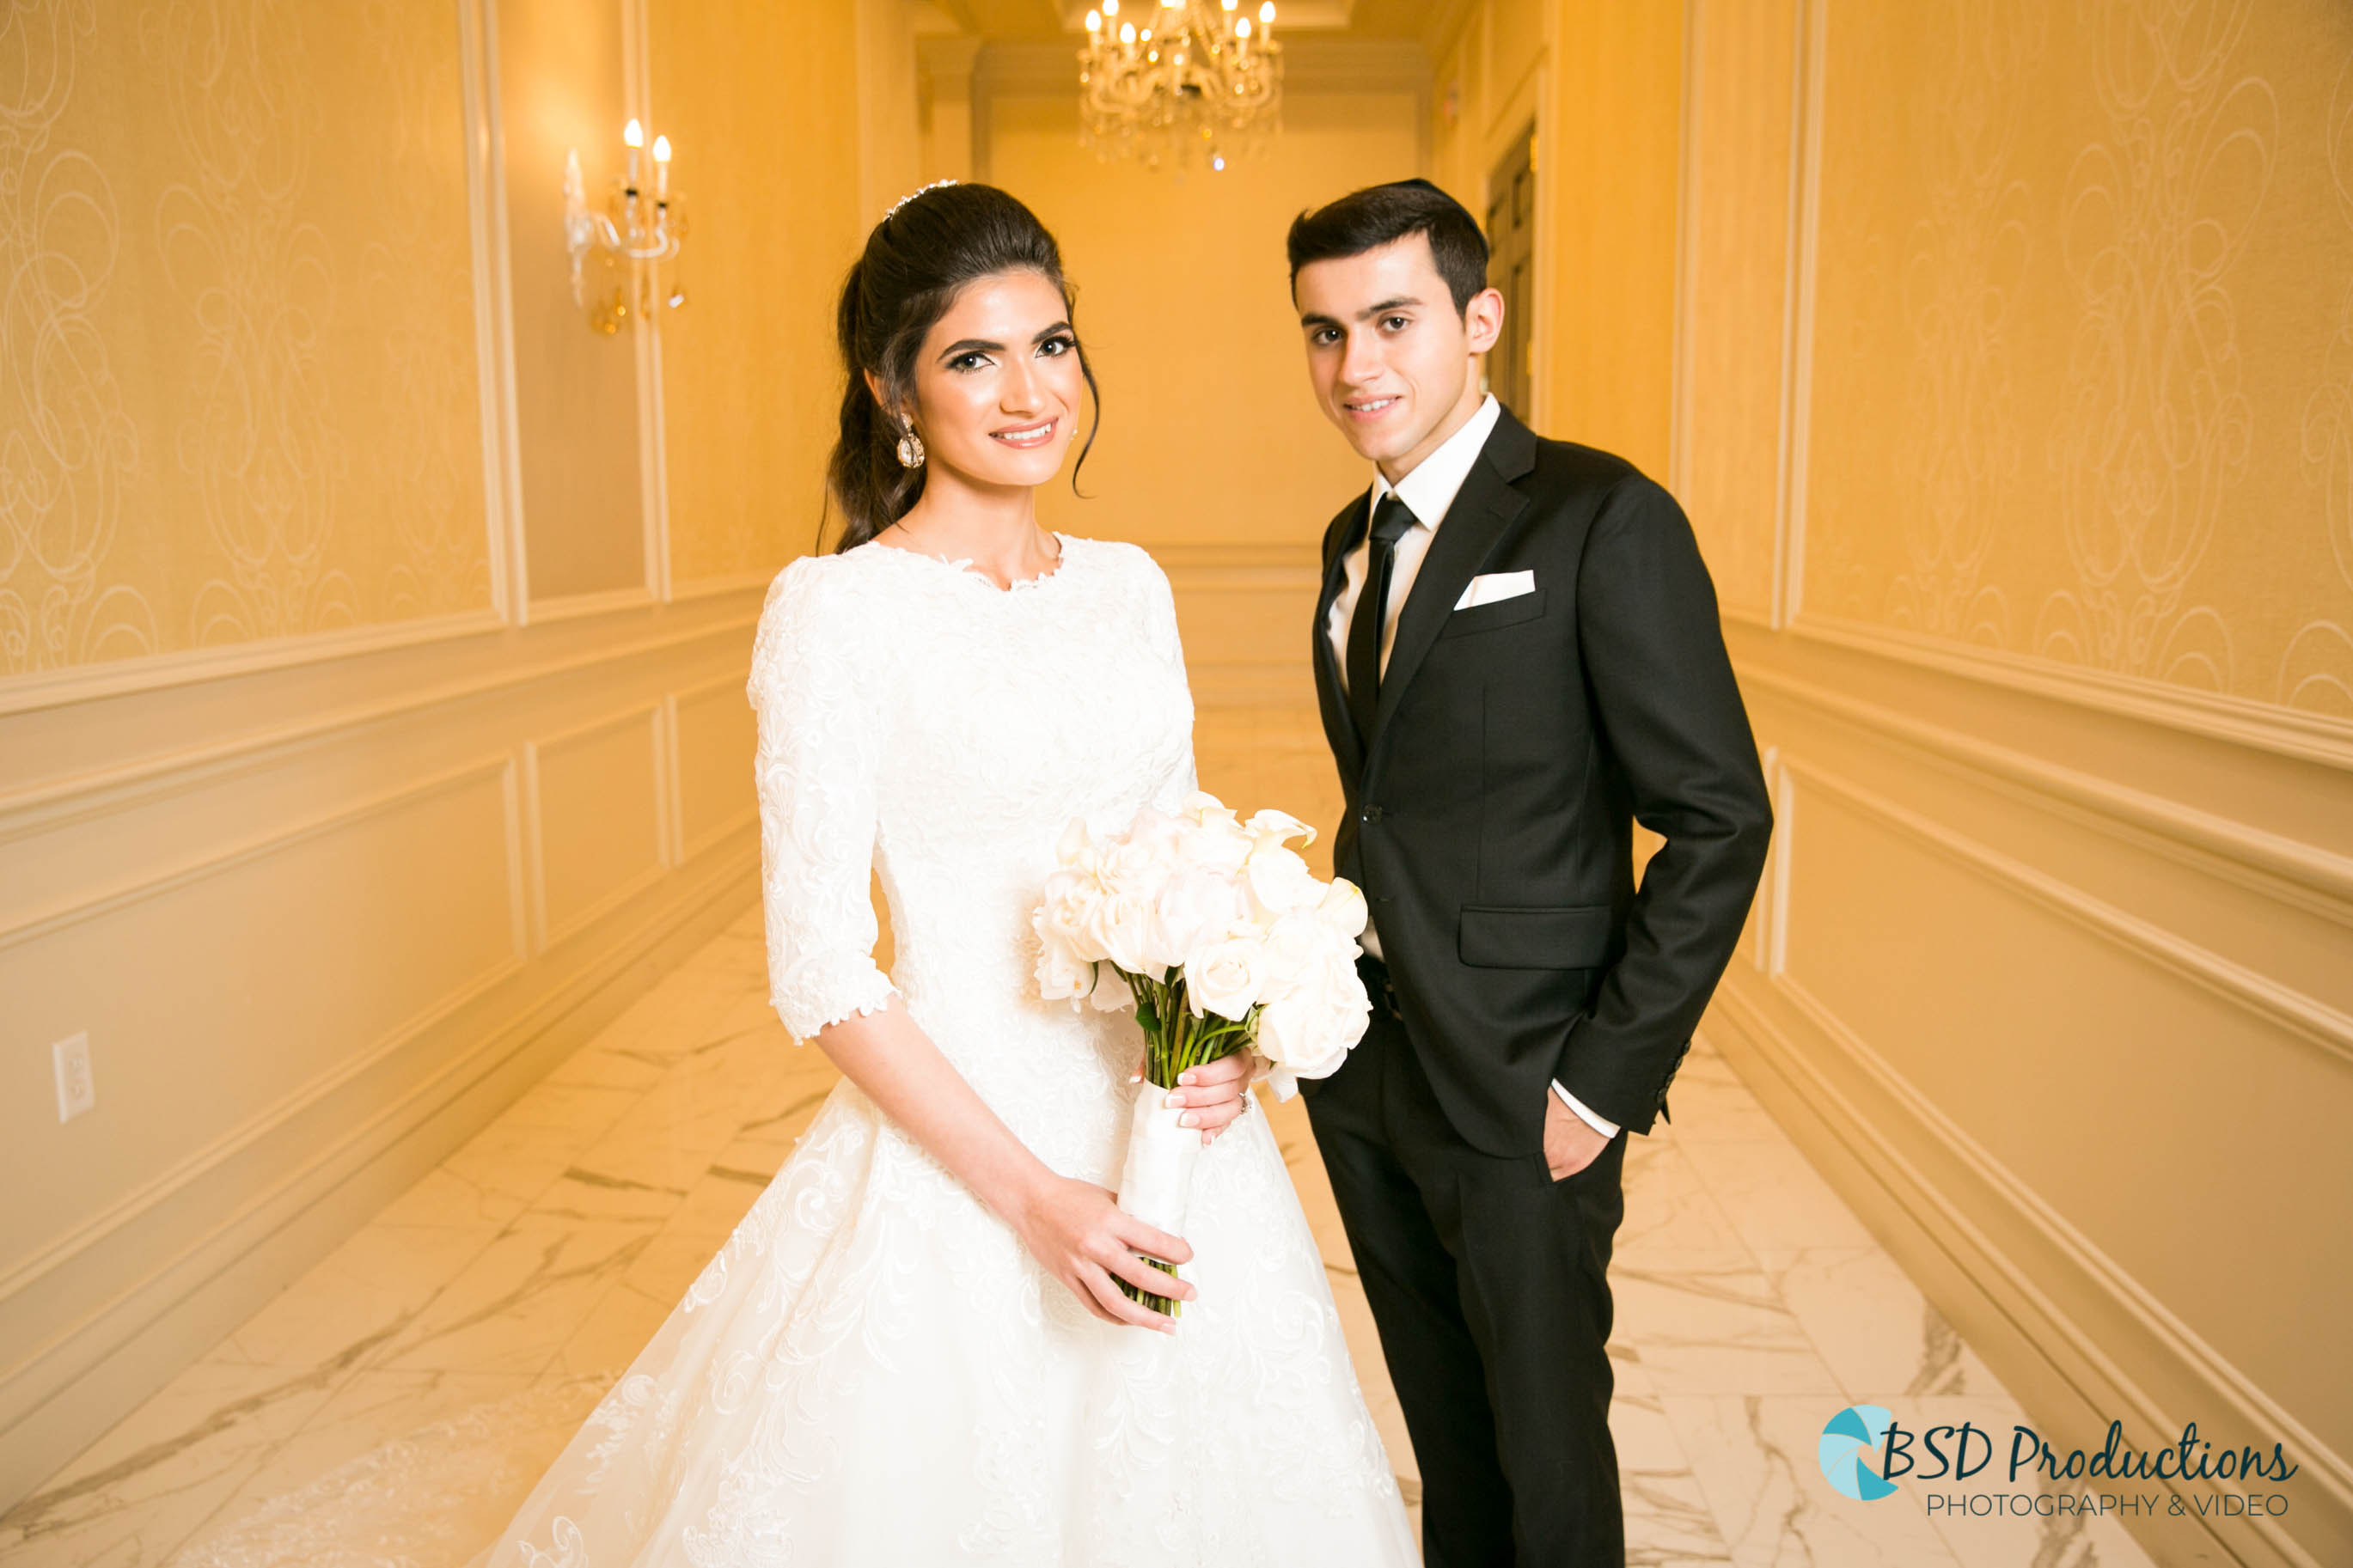 UH5A4802 Wedding – BSD Productions Photography